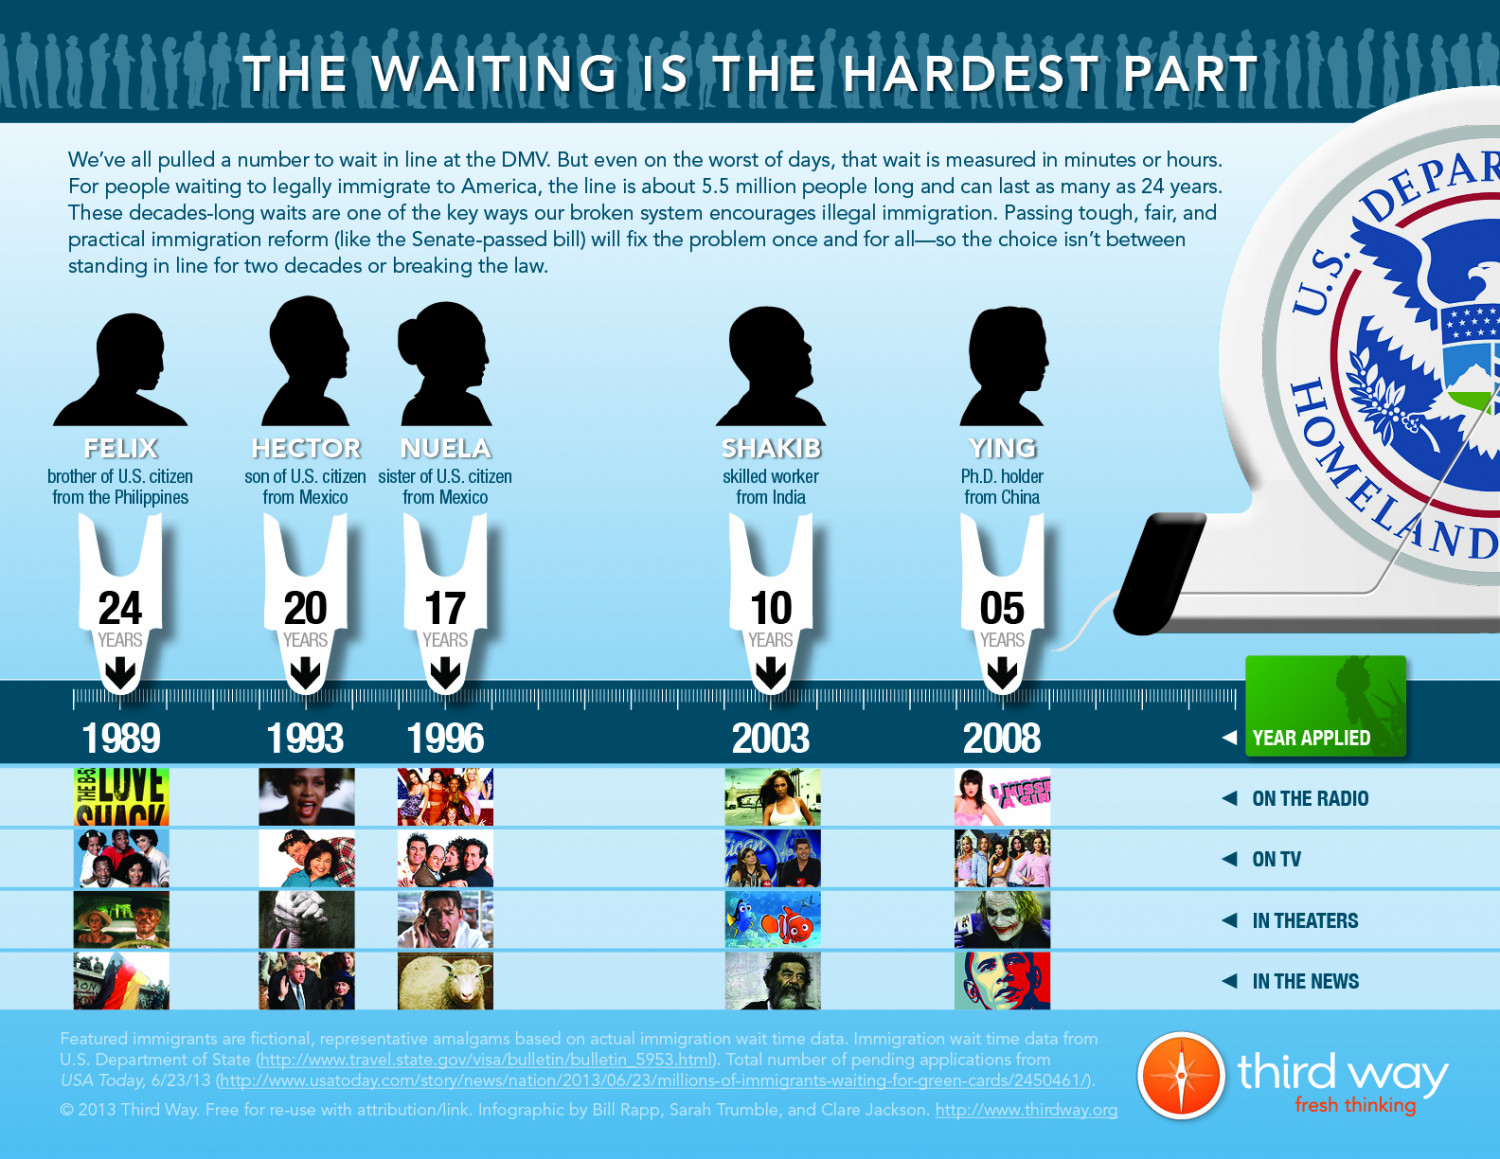 The Waiting is the Hardest Part Infographic